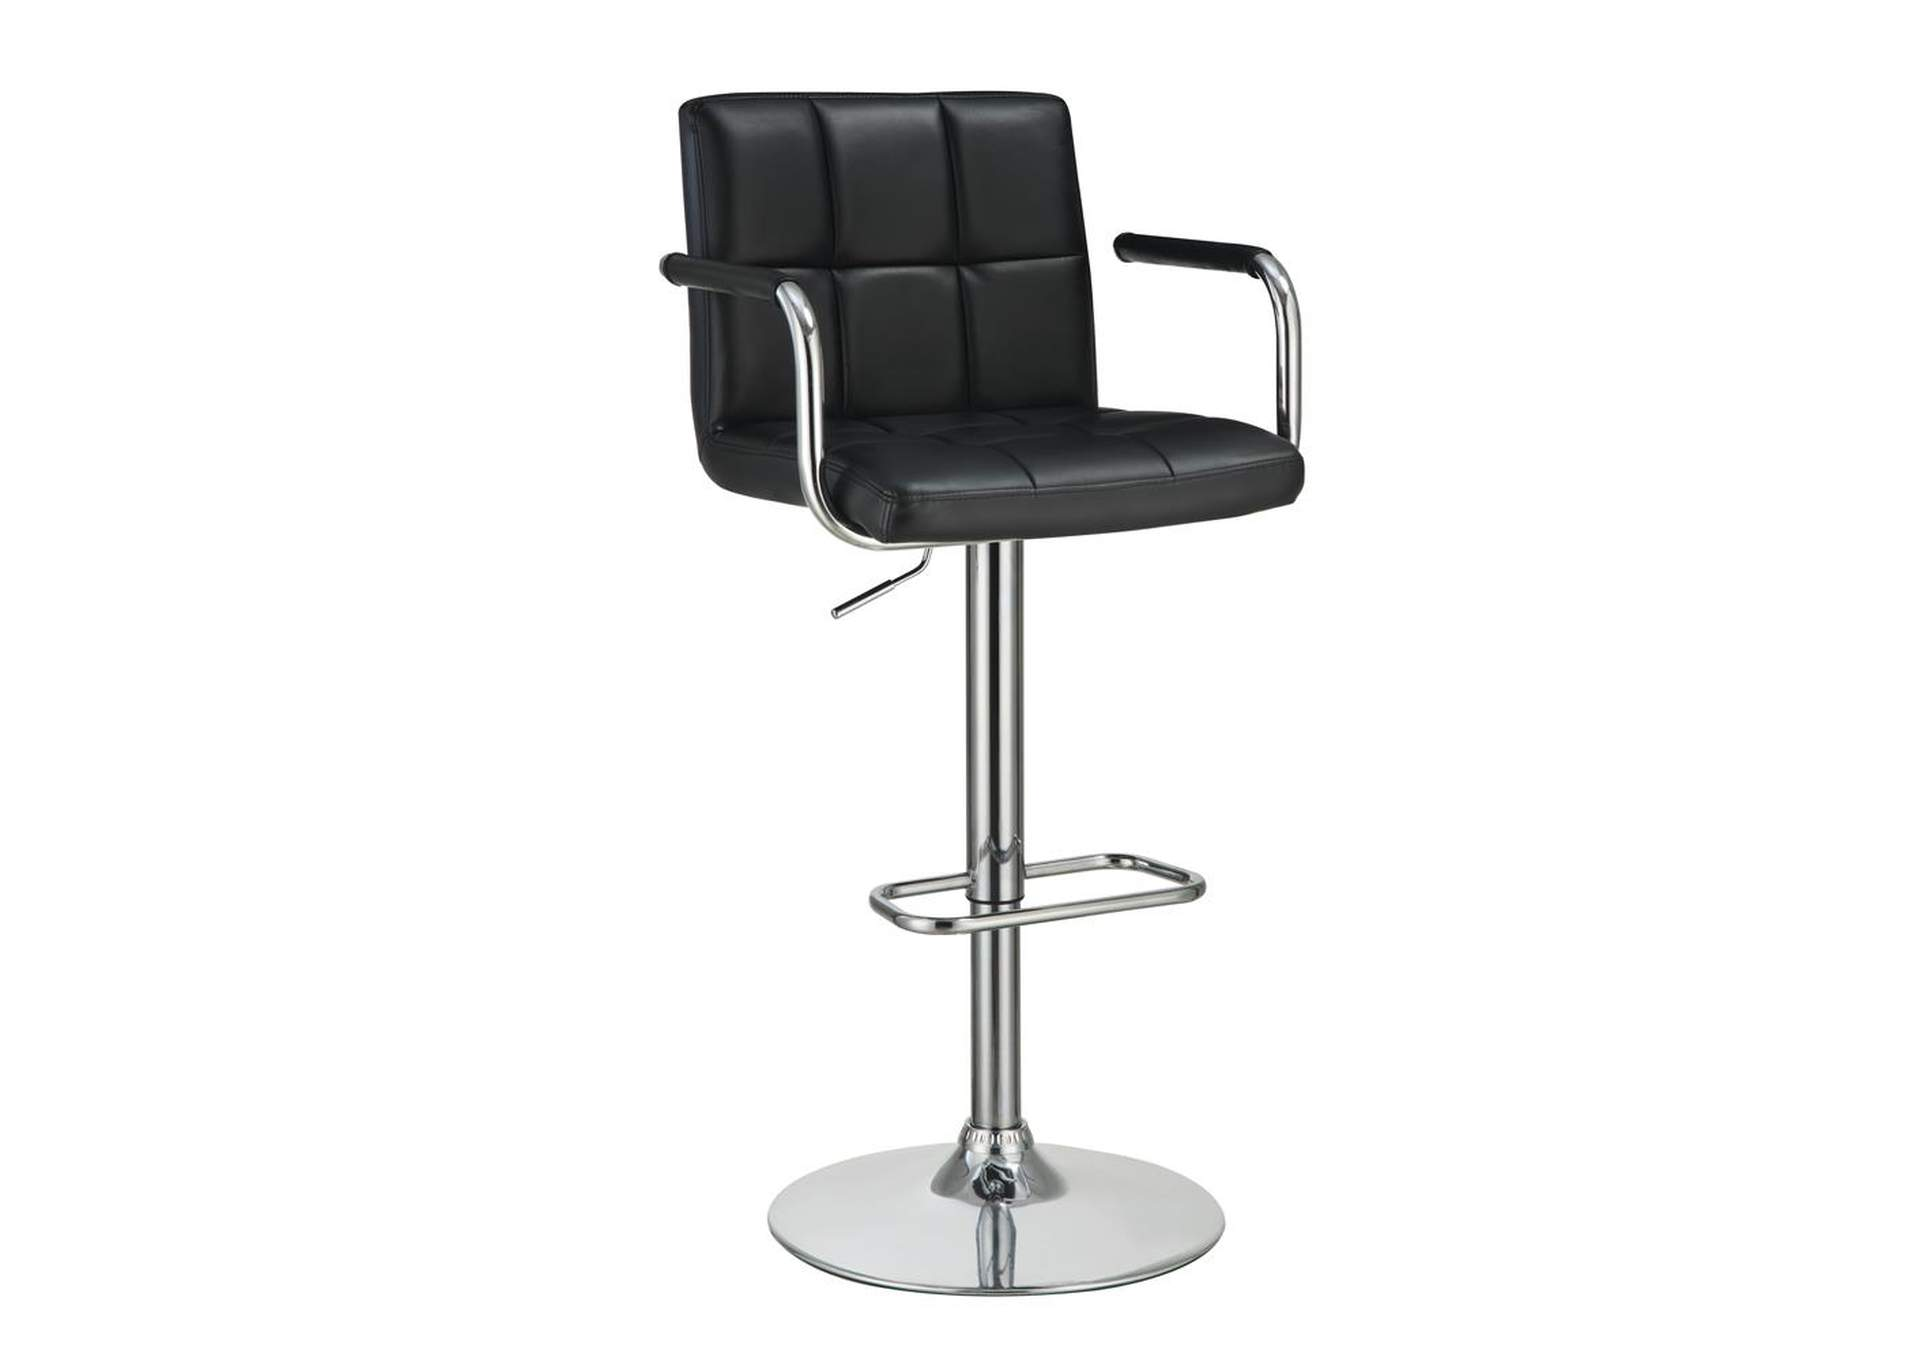 Black and Chrome Adjustable Bar Stool w/Arms,Coaster Furniture